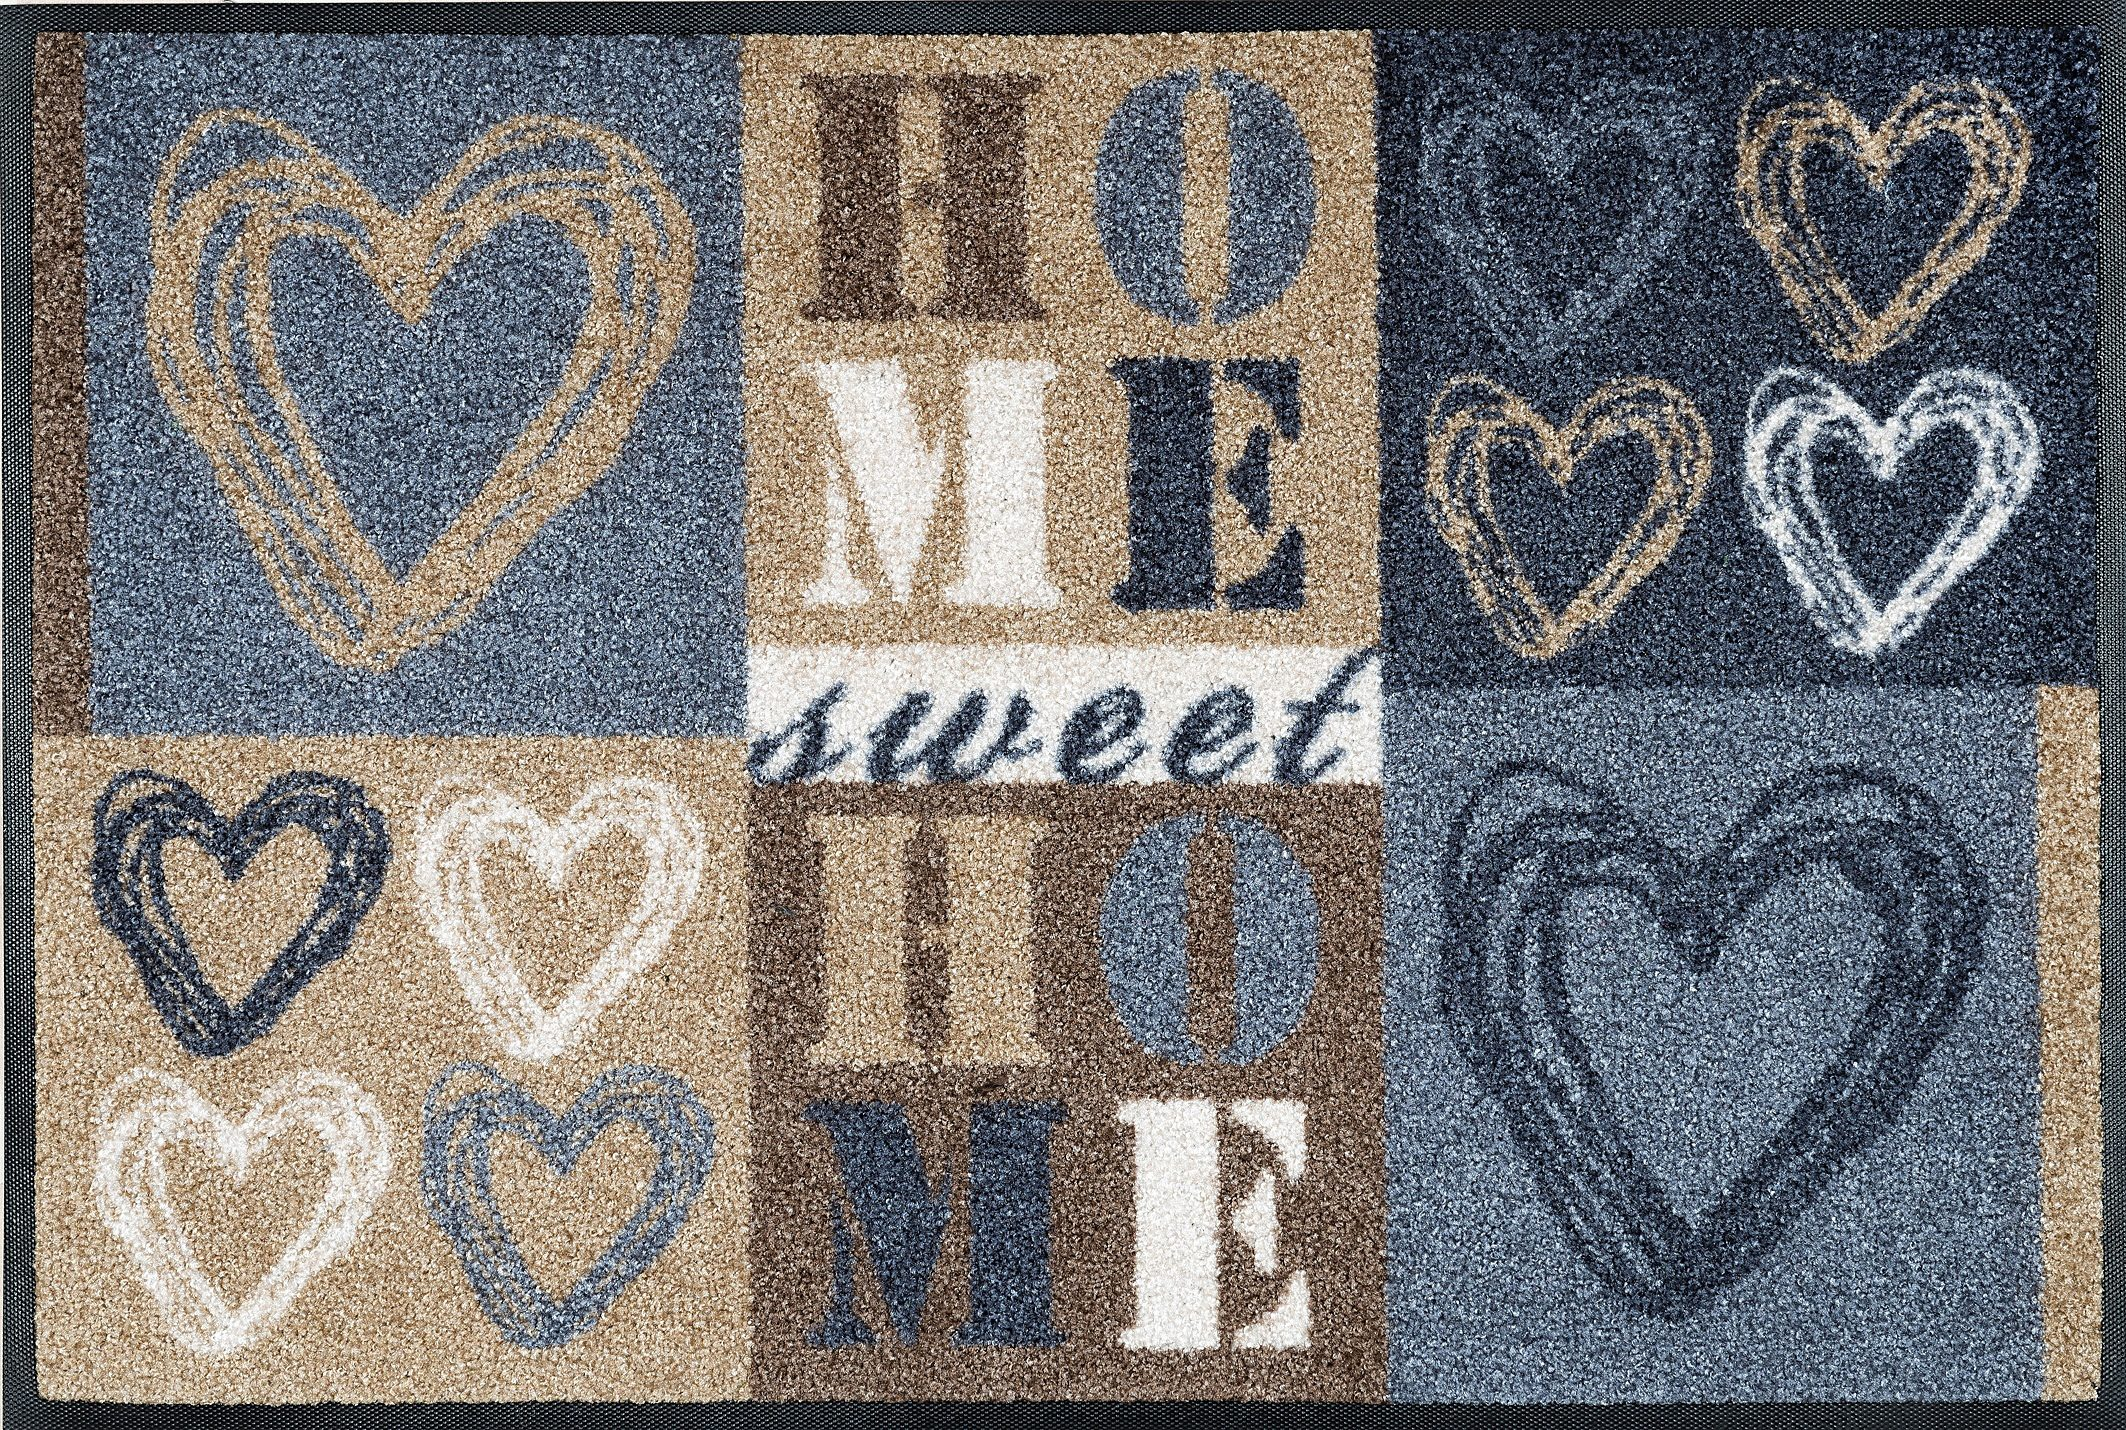 Fußmatte »Lovely Home«, wash+dry by Kleen-Tex, rechteckig, Höhe 9 mm